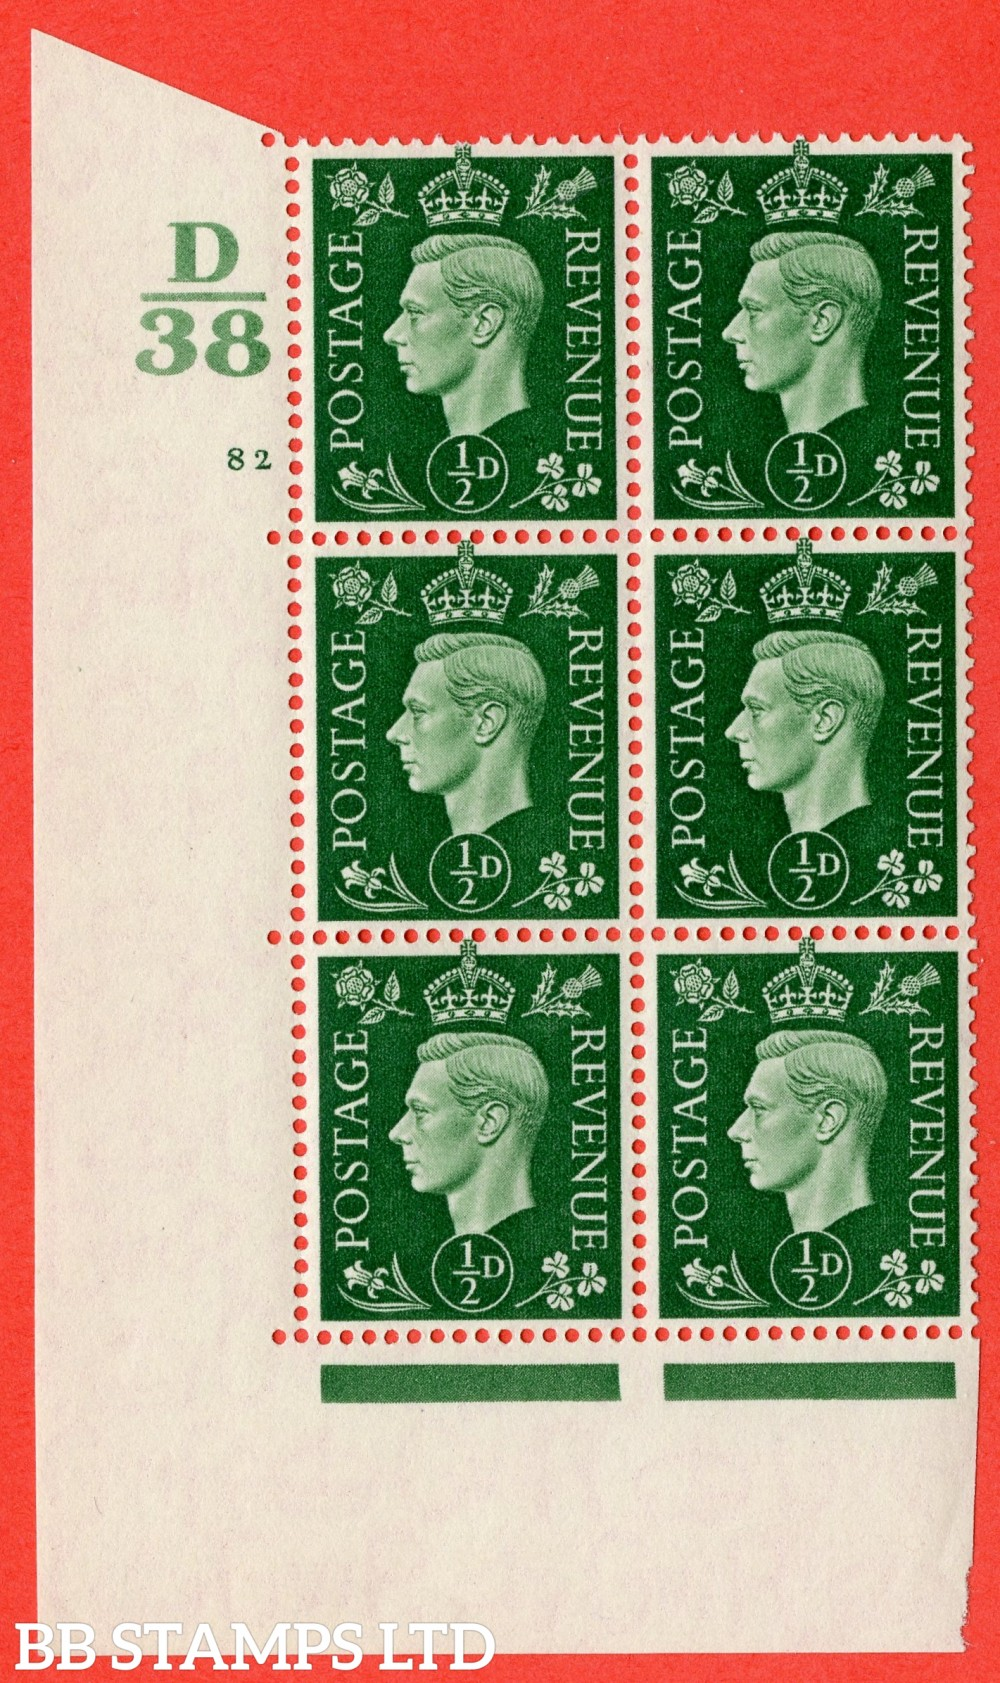 "SG. 462. Q1. ½d Green. A superb UNMOUNTED MINT "" Control D38 cylinder 82 no dot "" block of 6 with perf type 5 E/I."